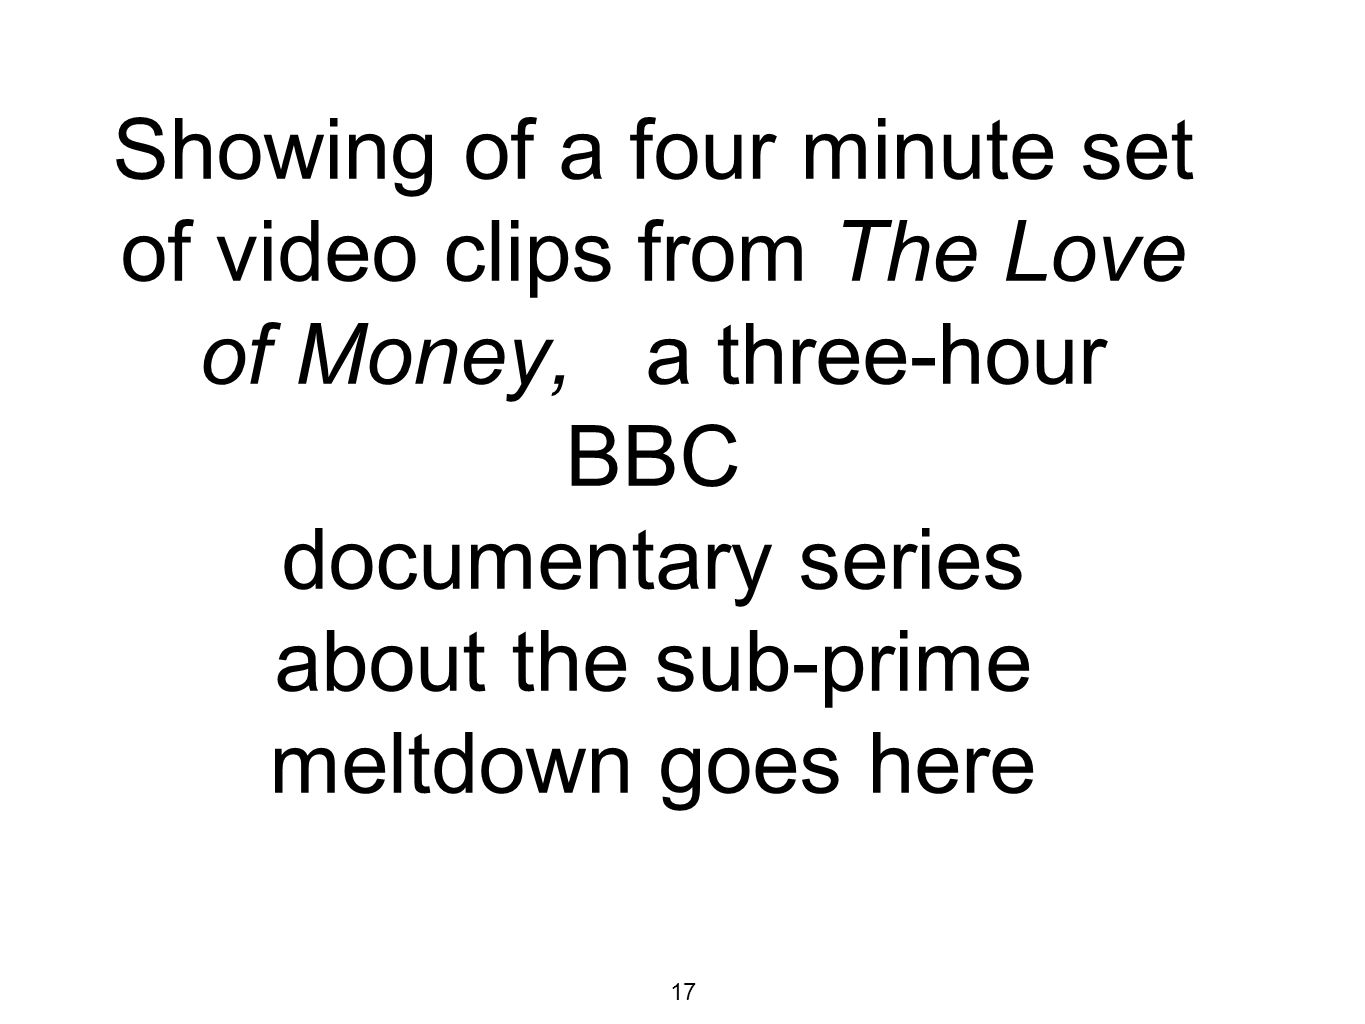 17 Showing of a four minute set of video clips from The Love of Money, a three-hour BBC documentary series about the sub-prime meltdown goes here